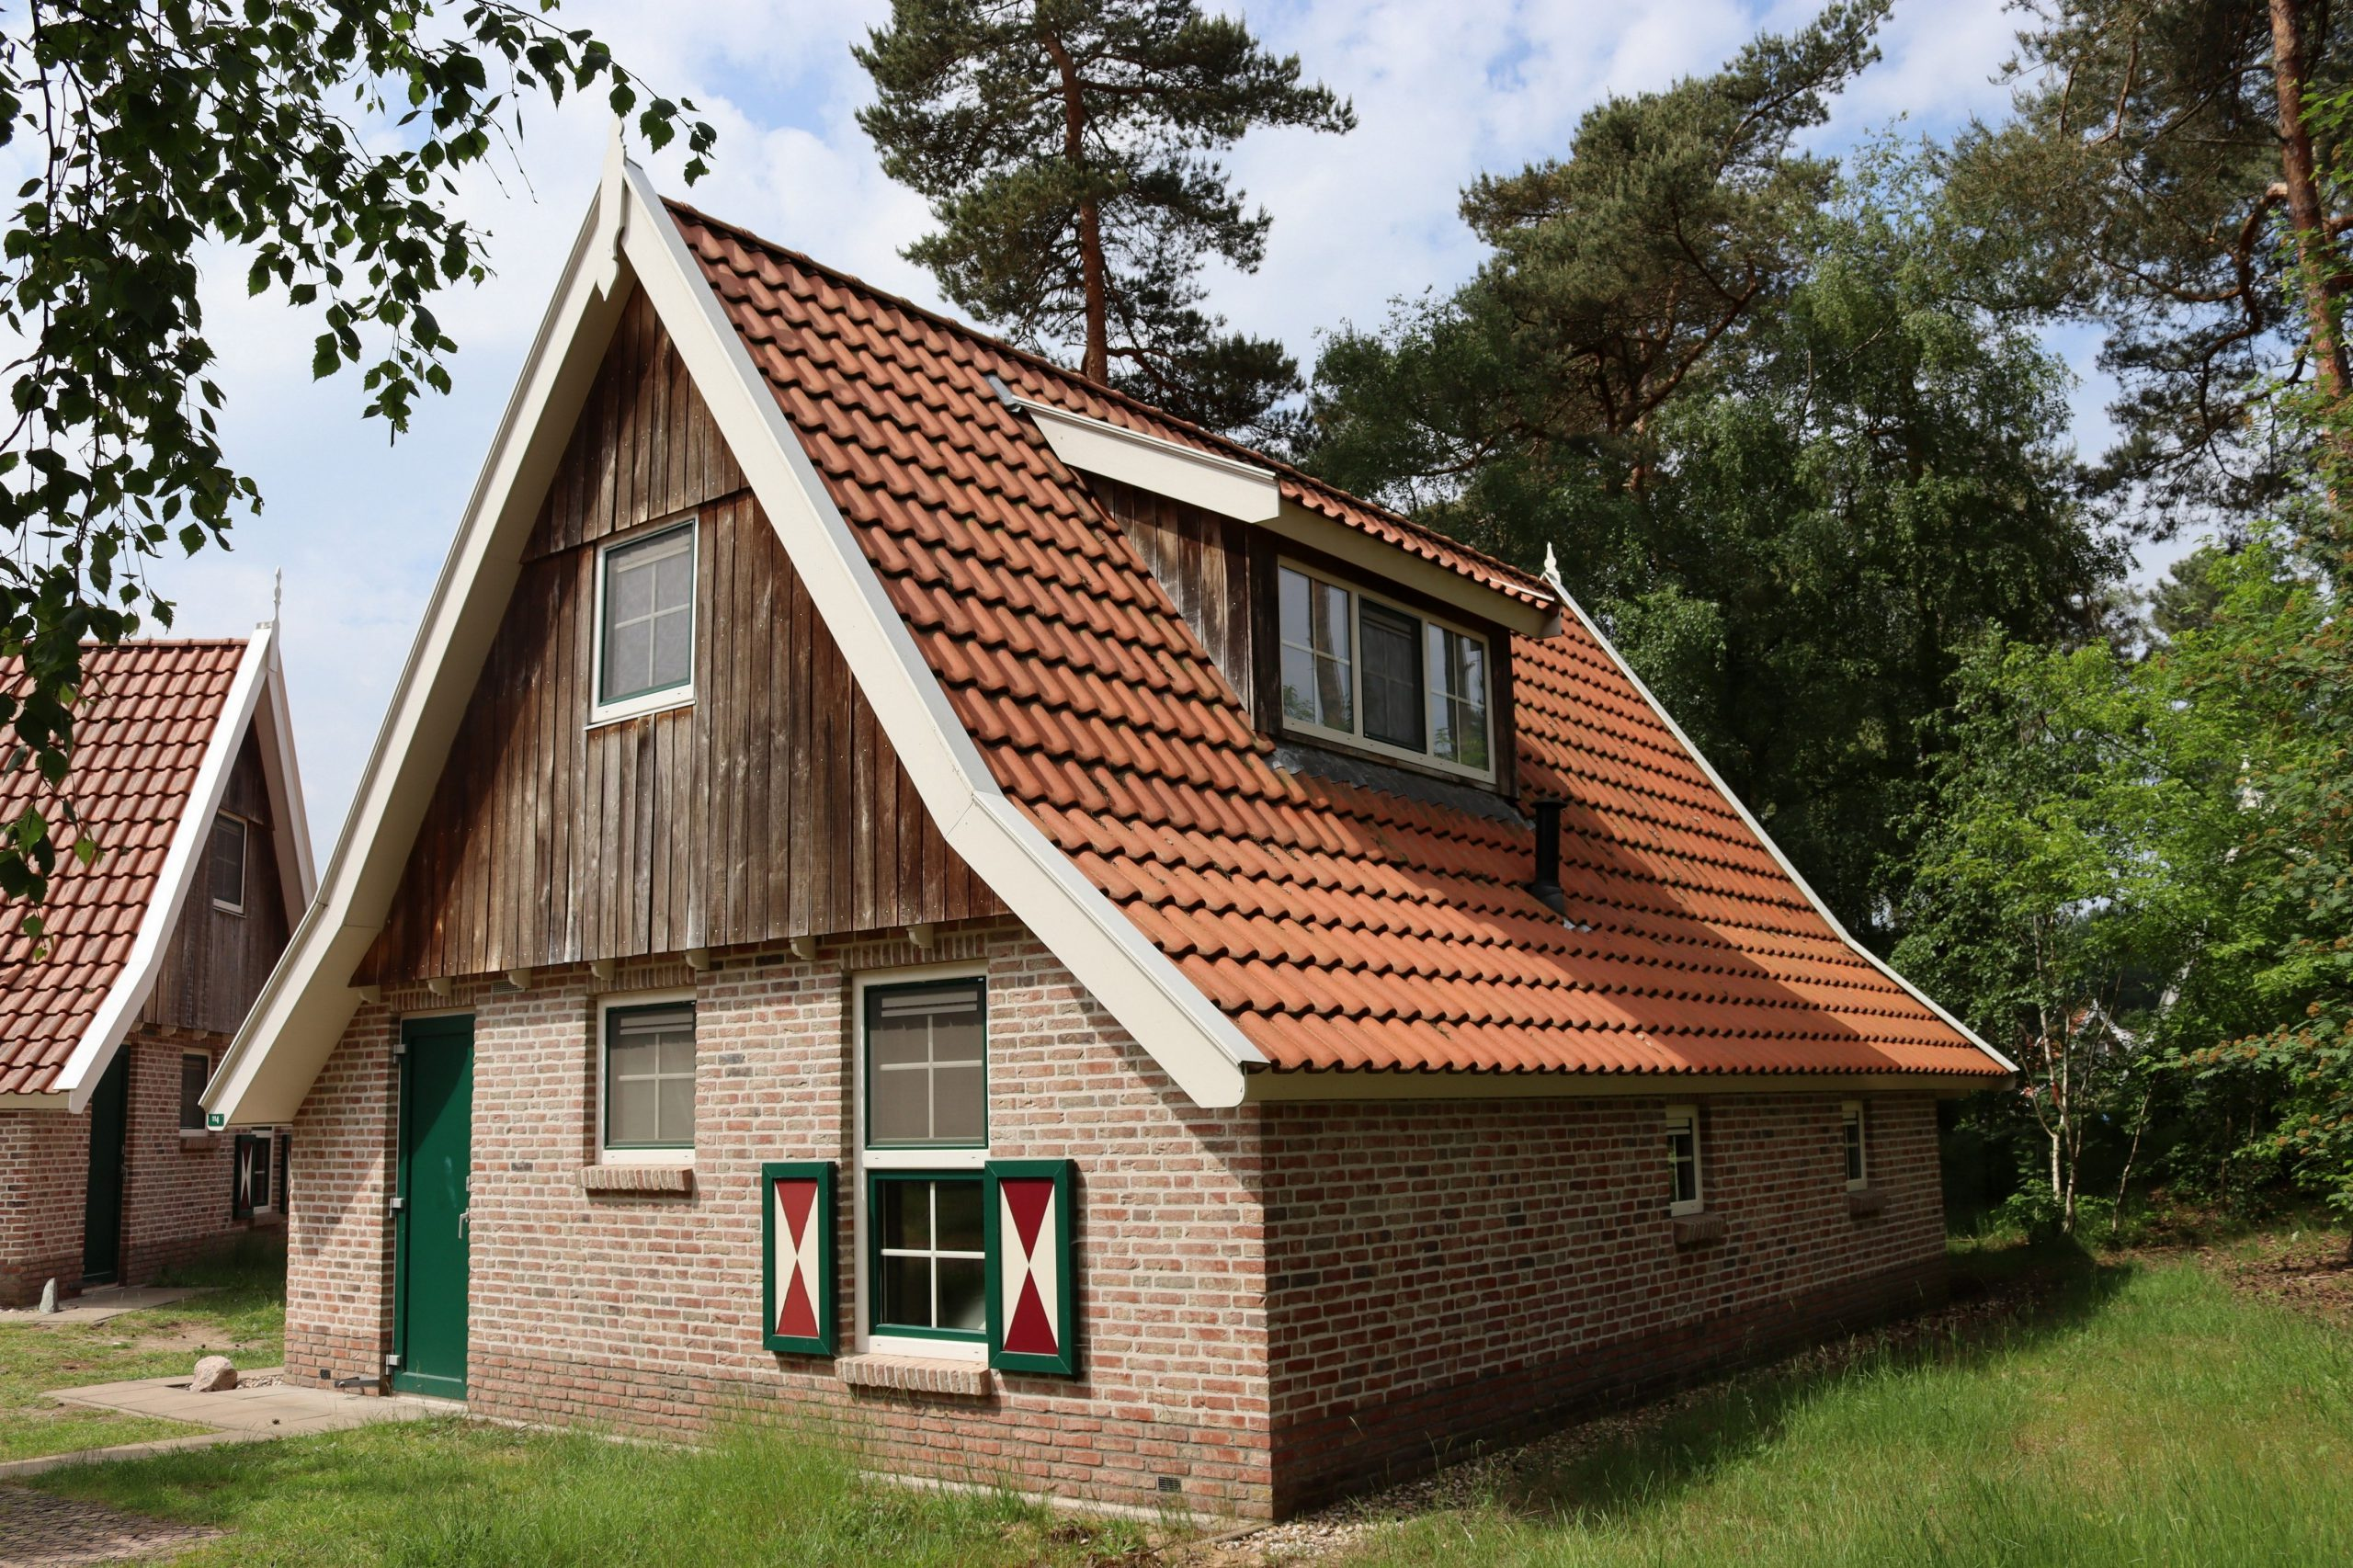 1. Recreatiewoning nr. 114 4-persoons luxe Steeger Hoes